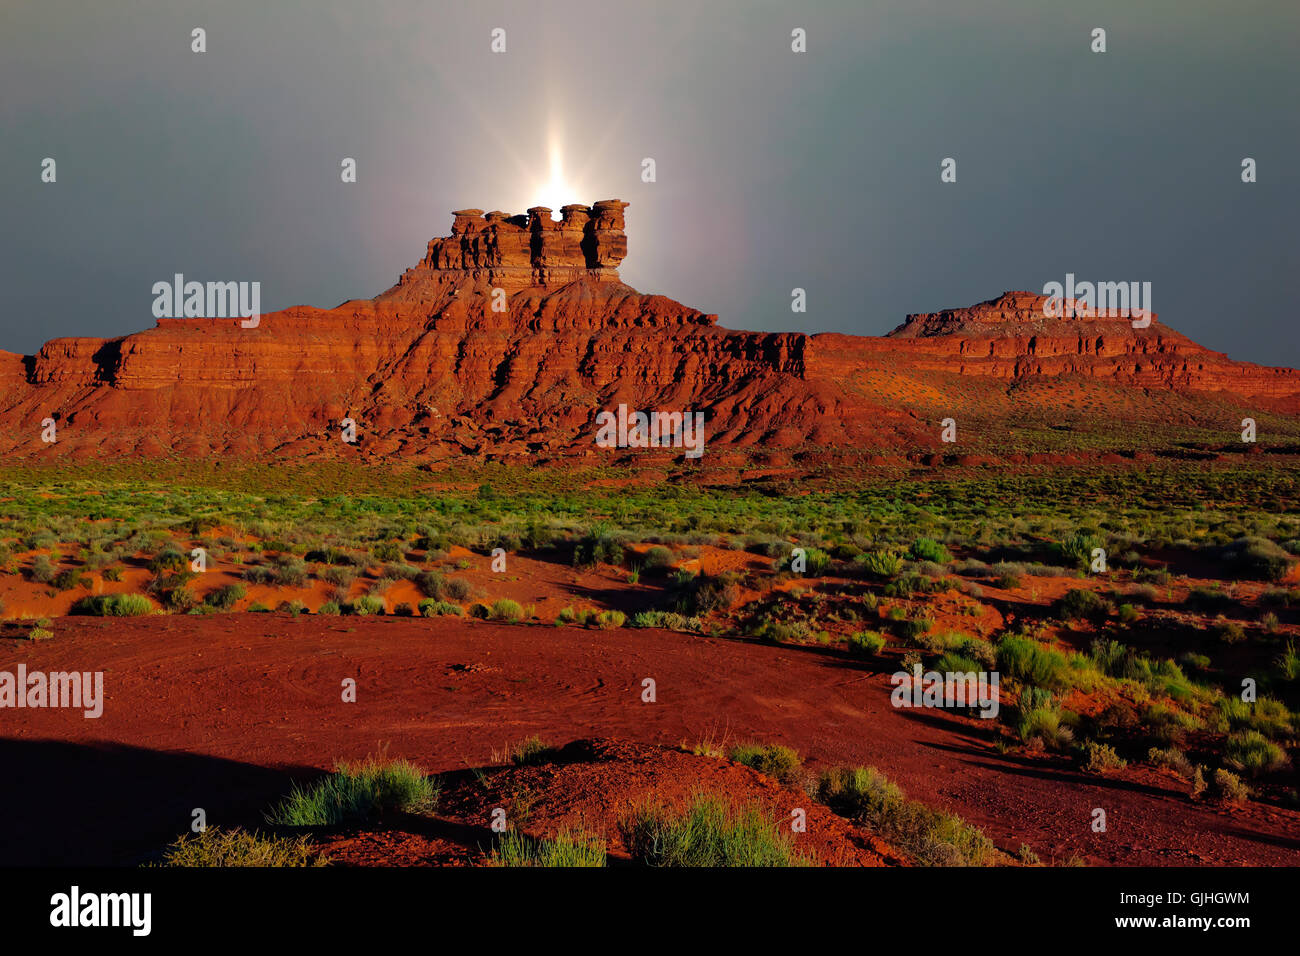 Valley of the Gods rock formation, Utah, America, USA - Stock Image